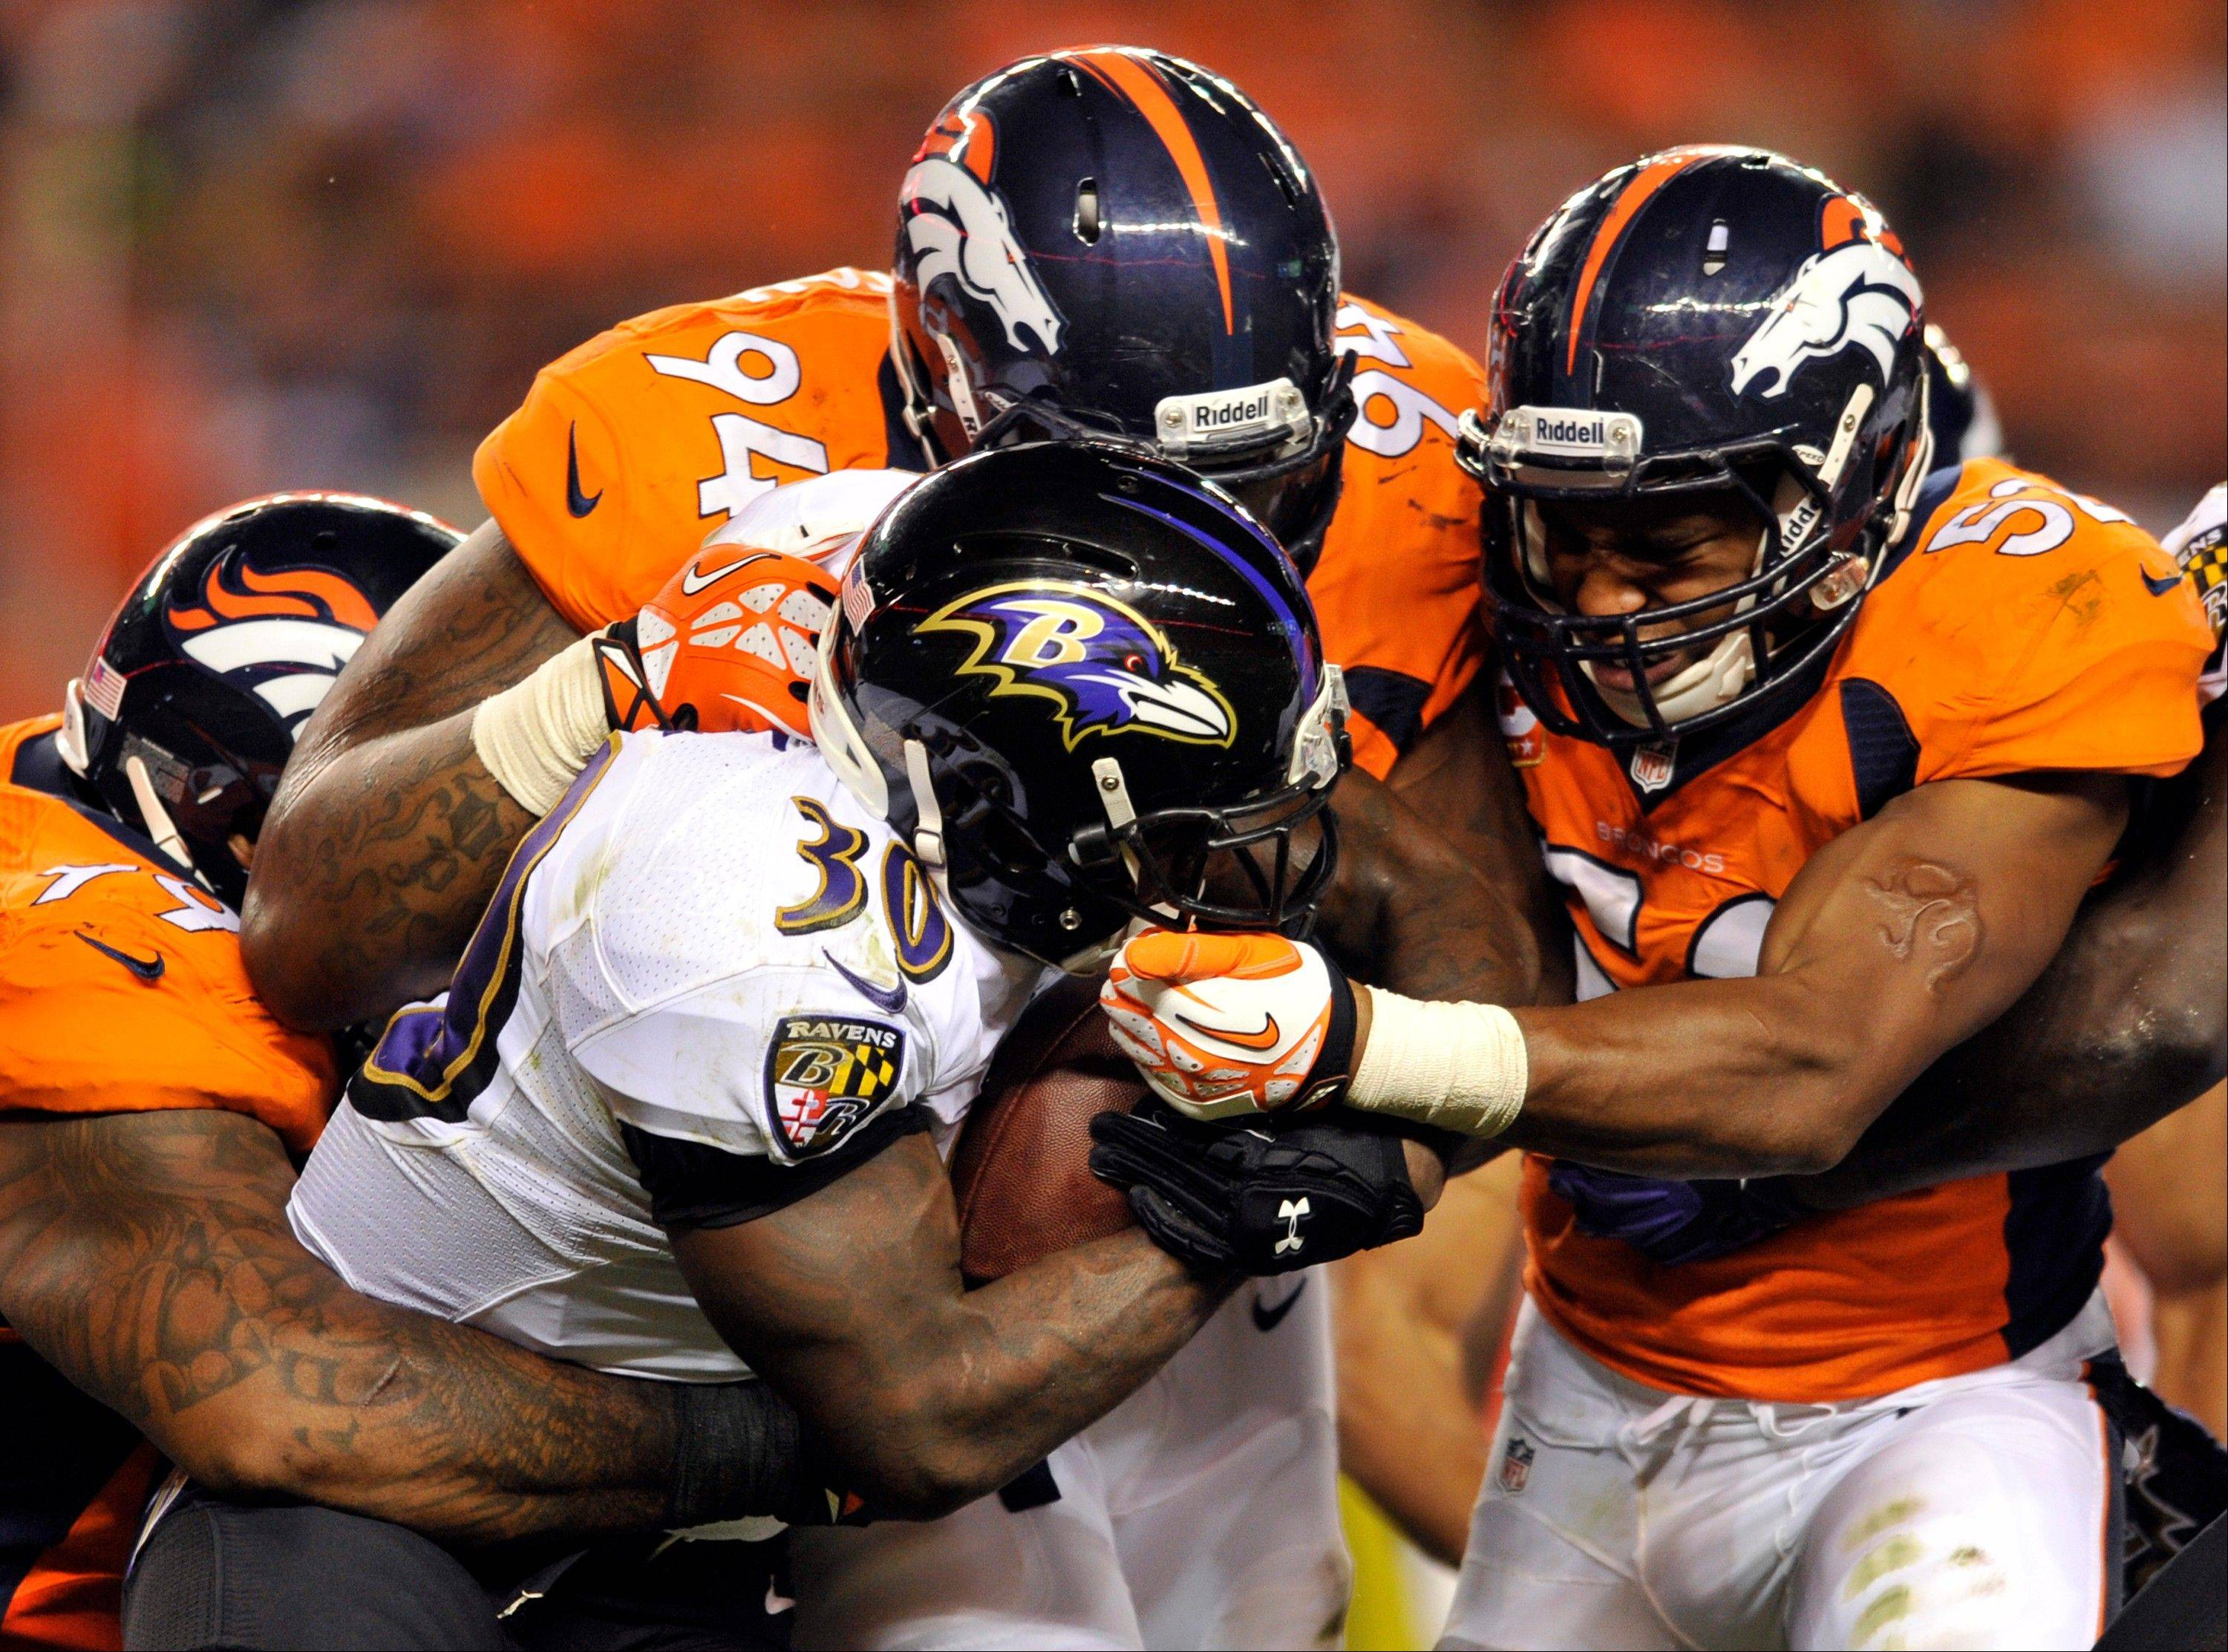 In this Sept. 25, 2013, file photo, Baltimore Ravens running back Bernard Pierce (30) is gang tackled by Denver Broncos defensive tackle Kevin Vickerson (99) , Terrance Knighton (94) and Wesley Woodyard (52) during an NFL football game, in Denver. Increasingly, teams are having trouble getting what they need on the ground on third or fourth down, with 2 or fewer yards needed for a first down or a touchdown. And increasingly, they're trying to pass for those short gains.